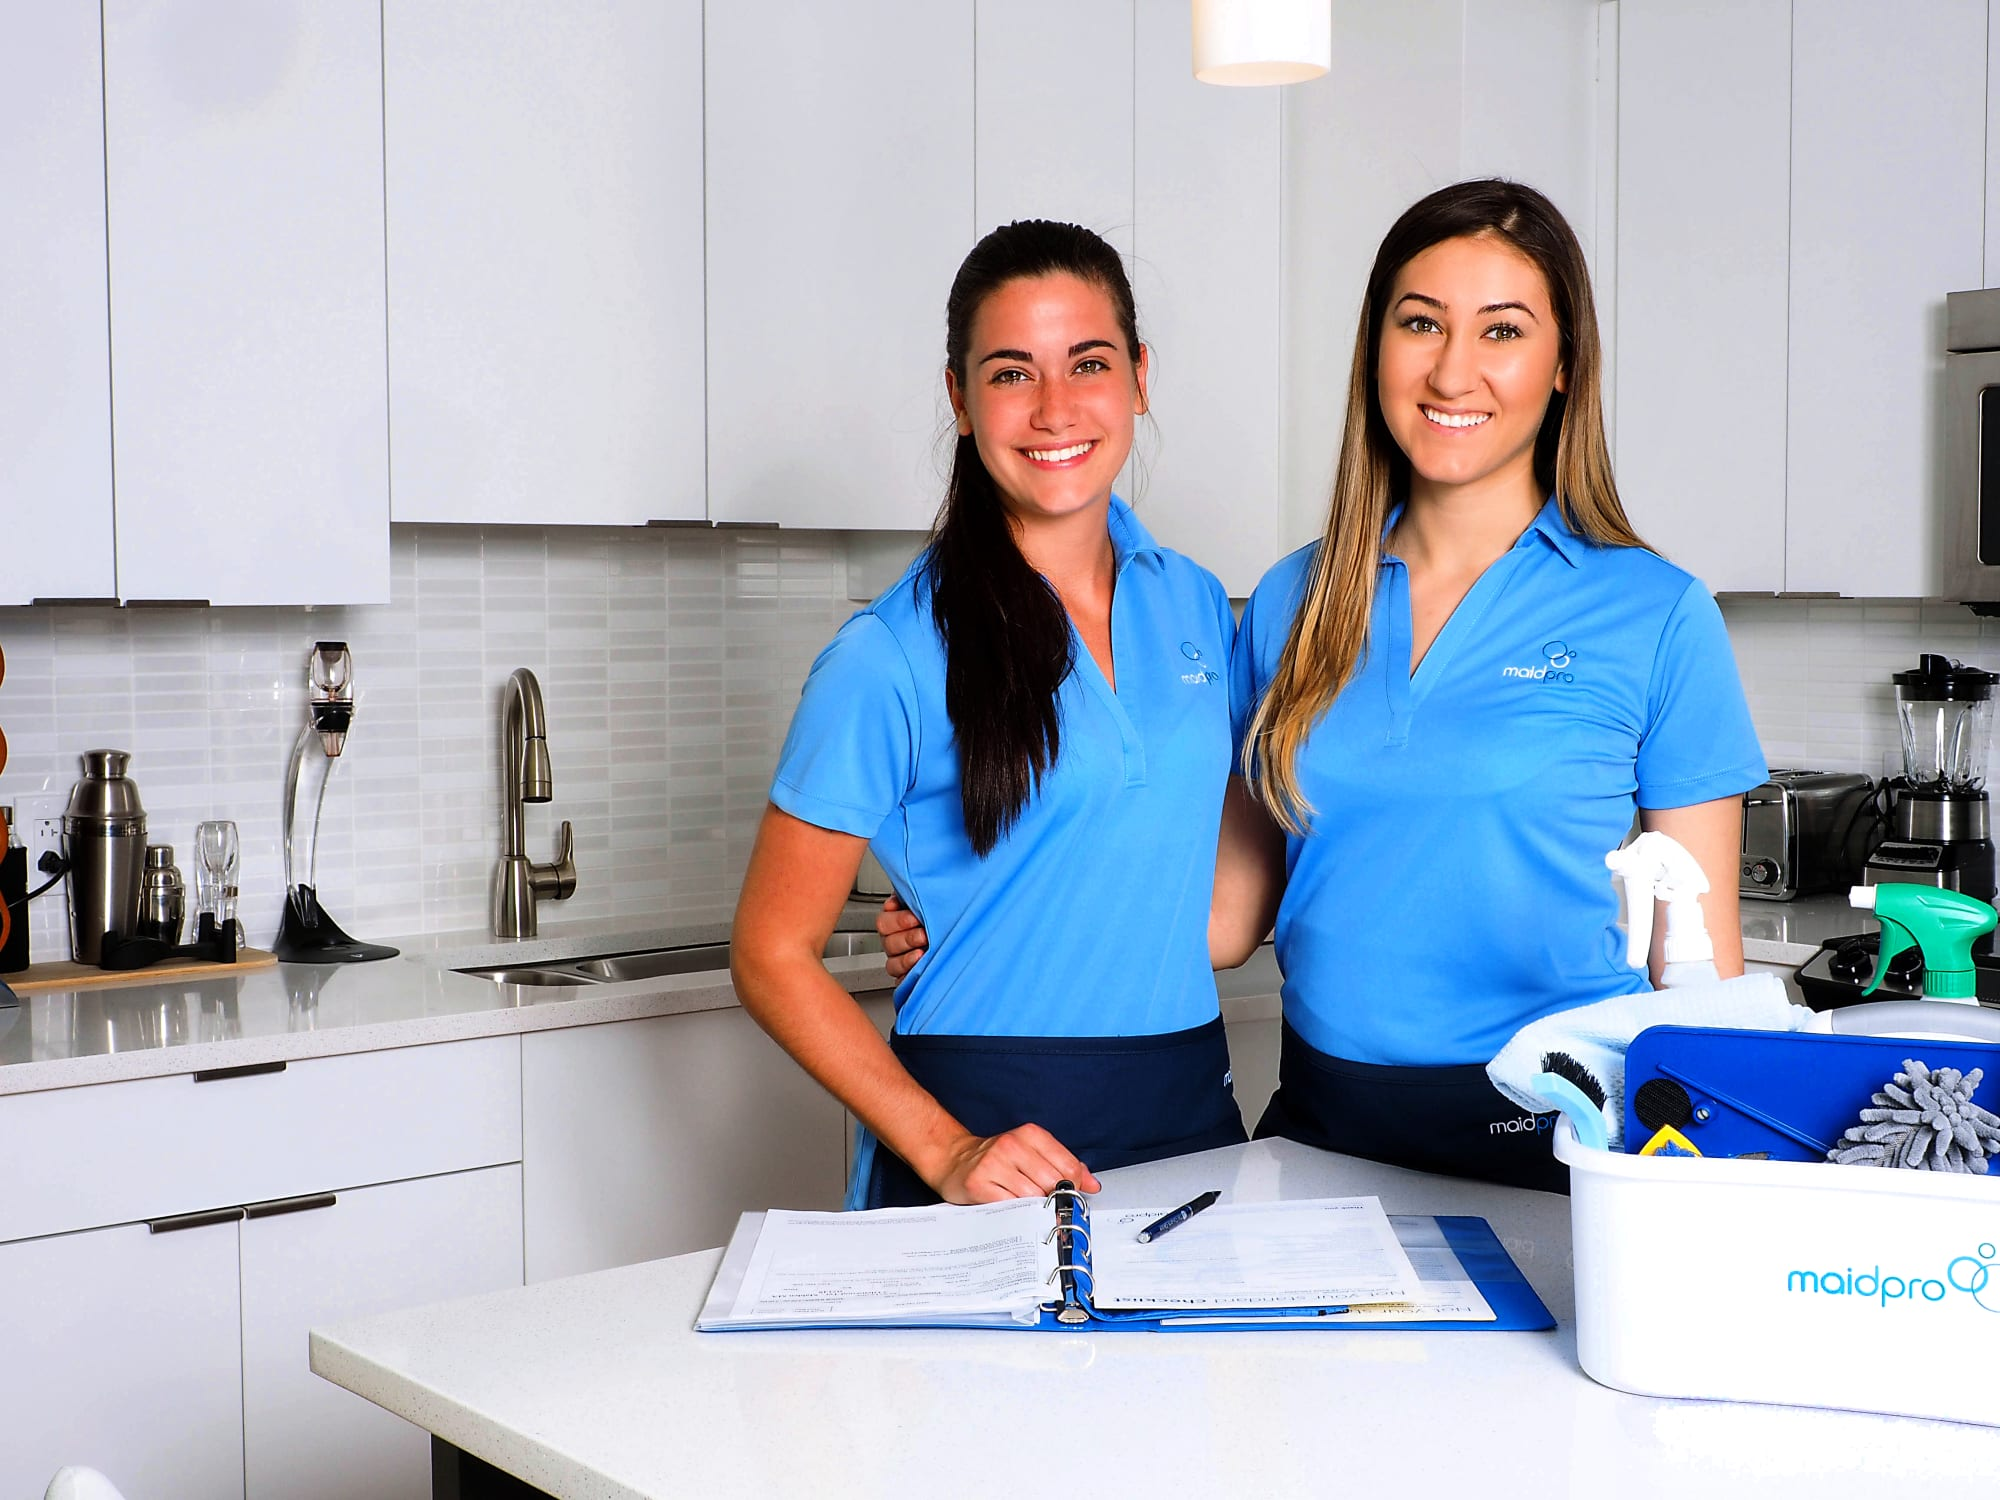 MaidPro Franchise Cleaners